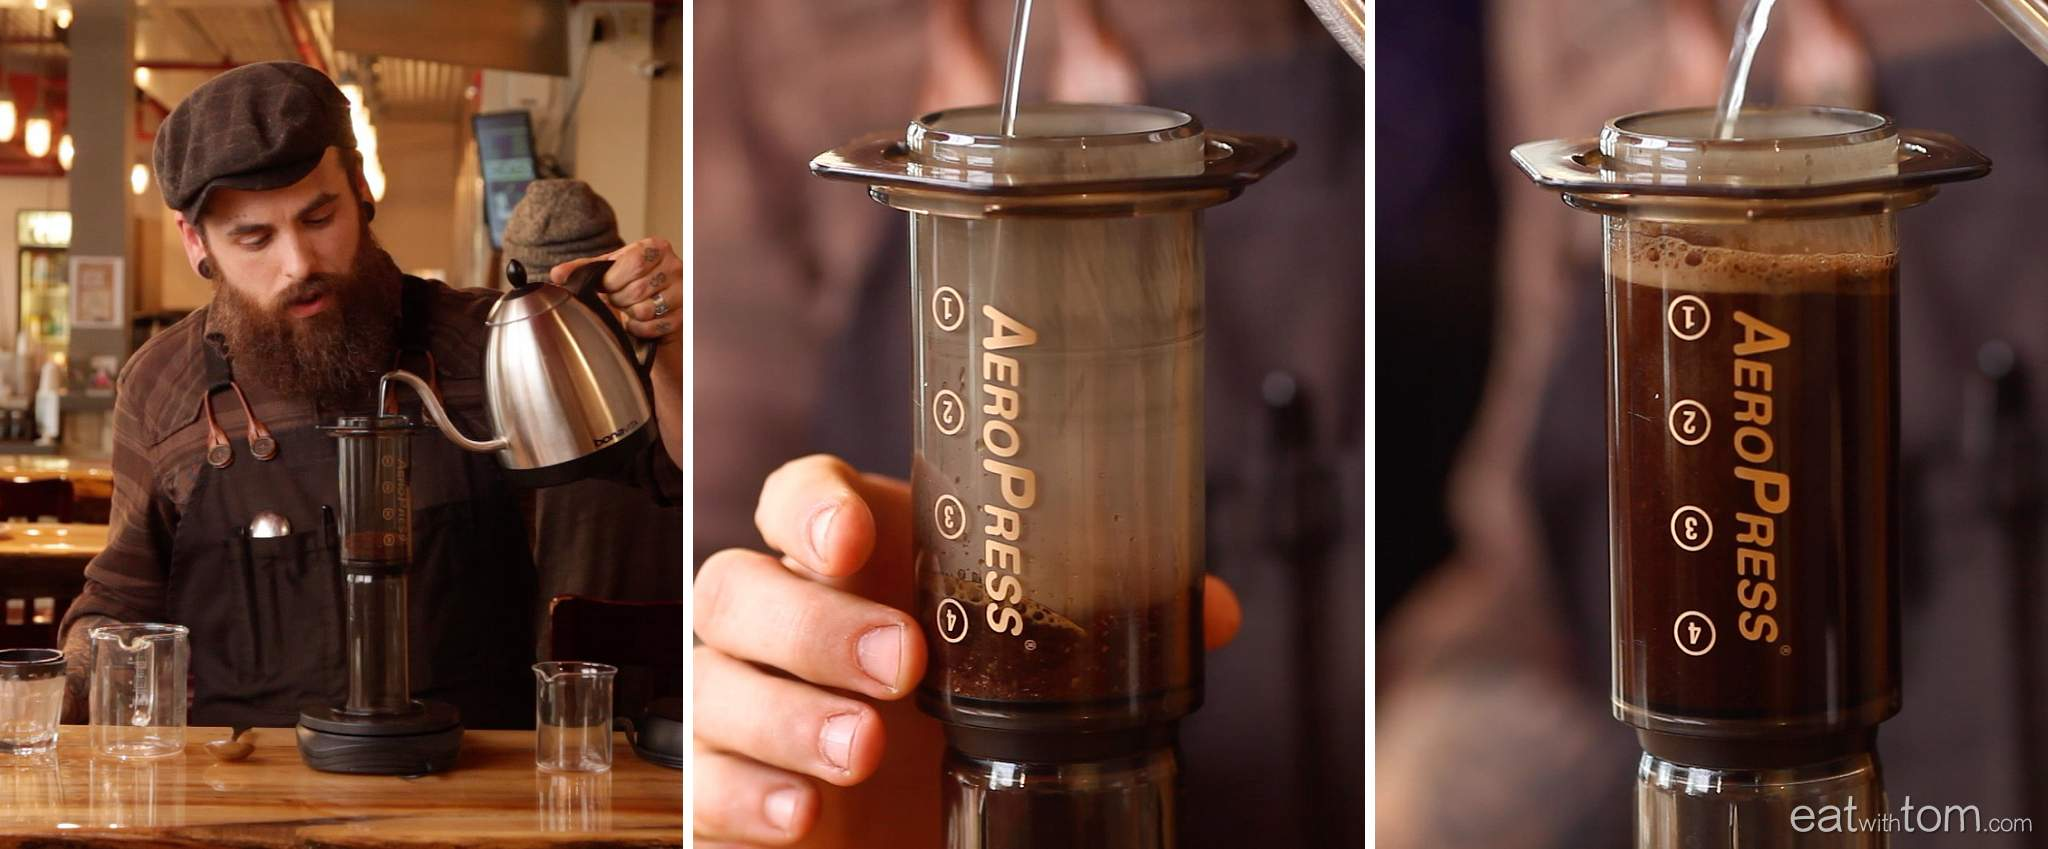 artisian coffee making tips video from everybodys coffee chicago brewing method